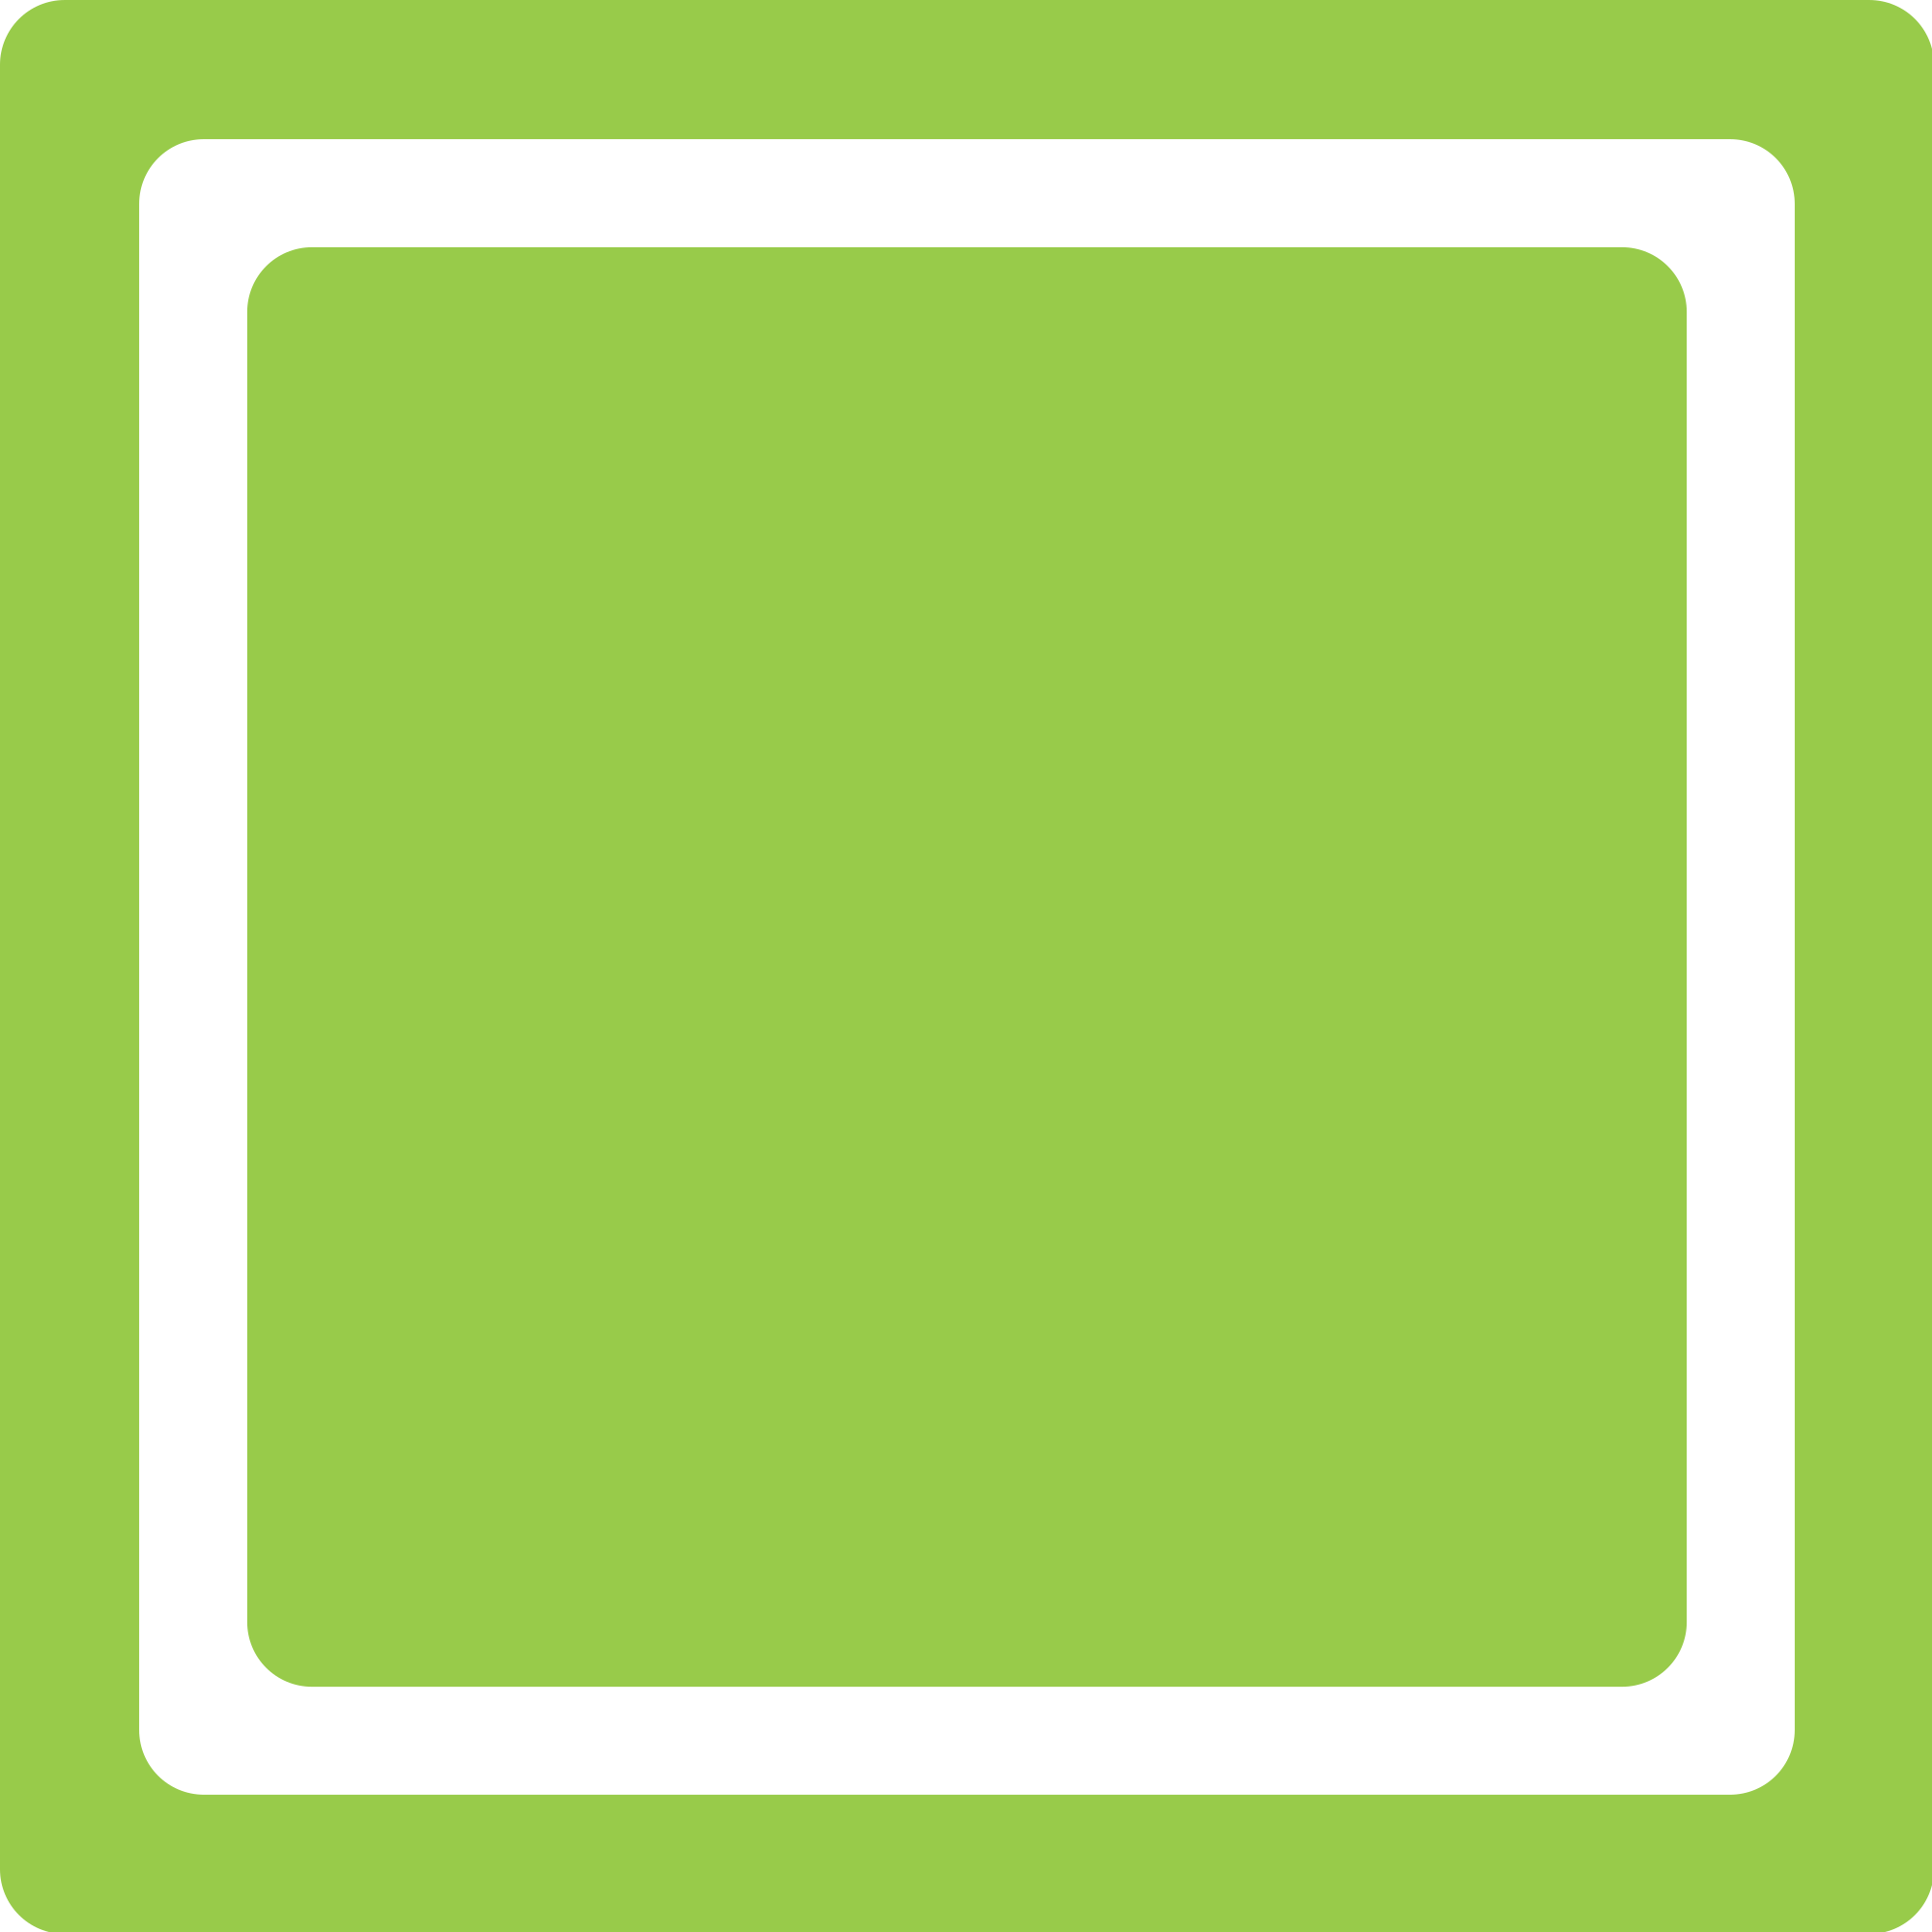 Lime svg checkbox